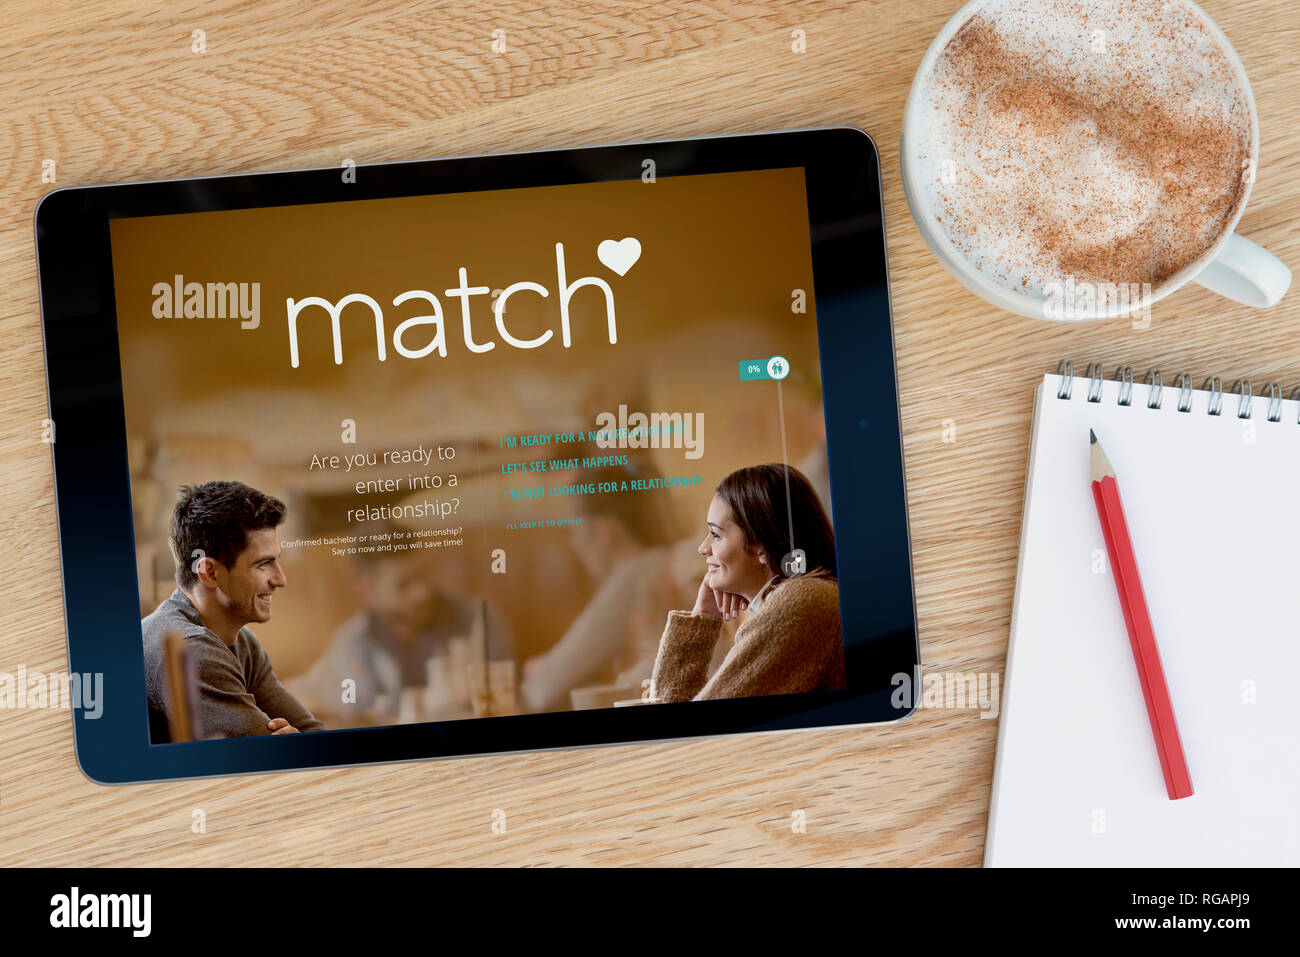 The Match.com website features on an iPad tablet device which rests on a wooden table beside a notepad (Editorial use only). - Stock Image